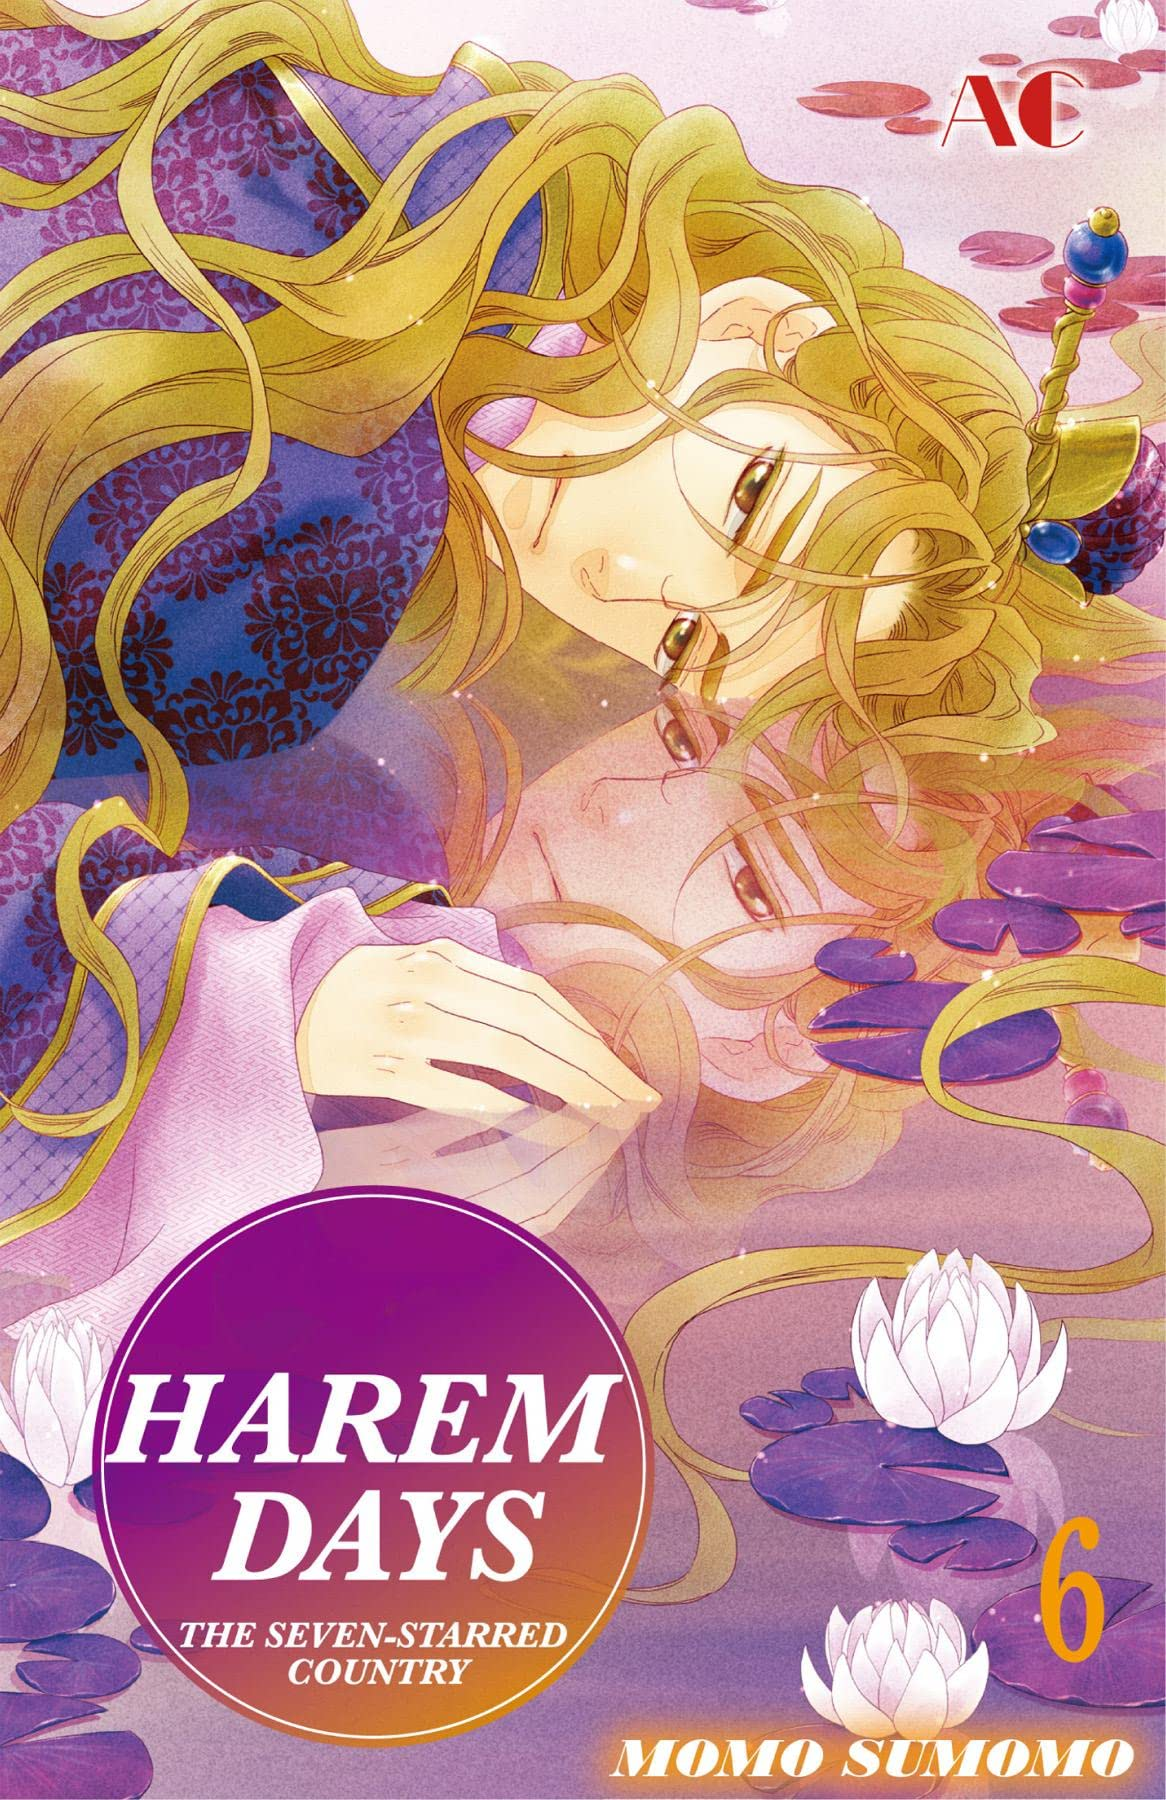 HAREM DAYS THE SEVEN-STARRED COUNTRY Vol. 6